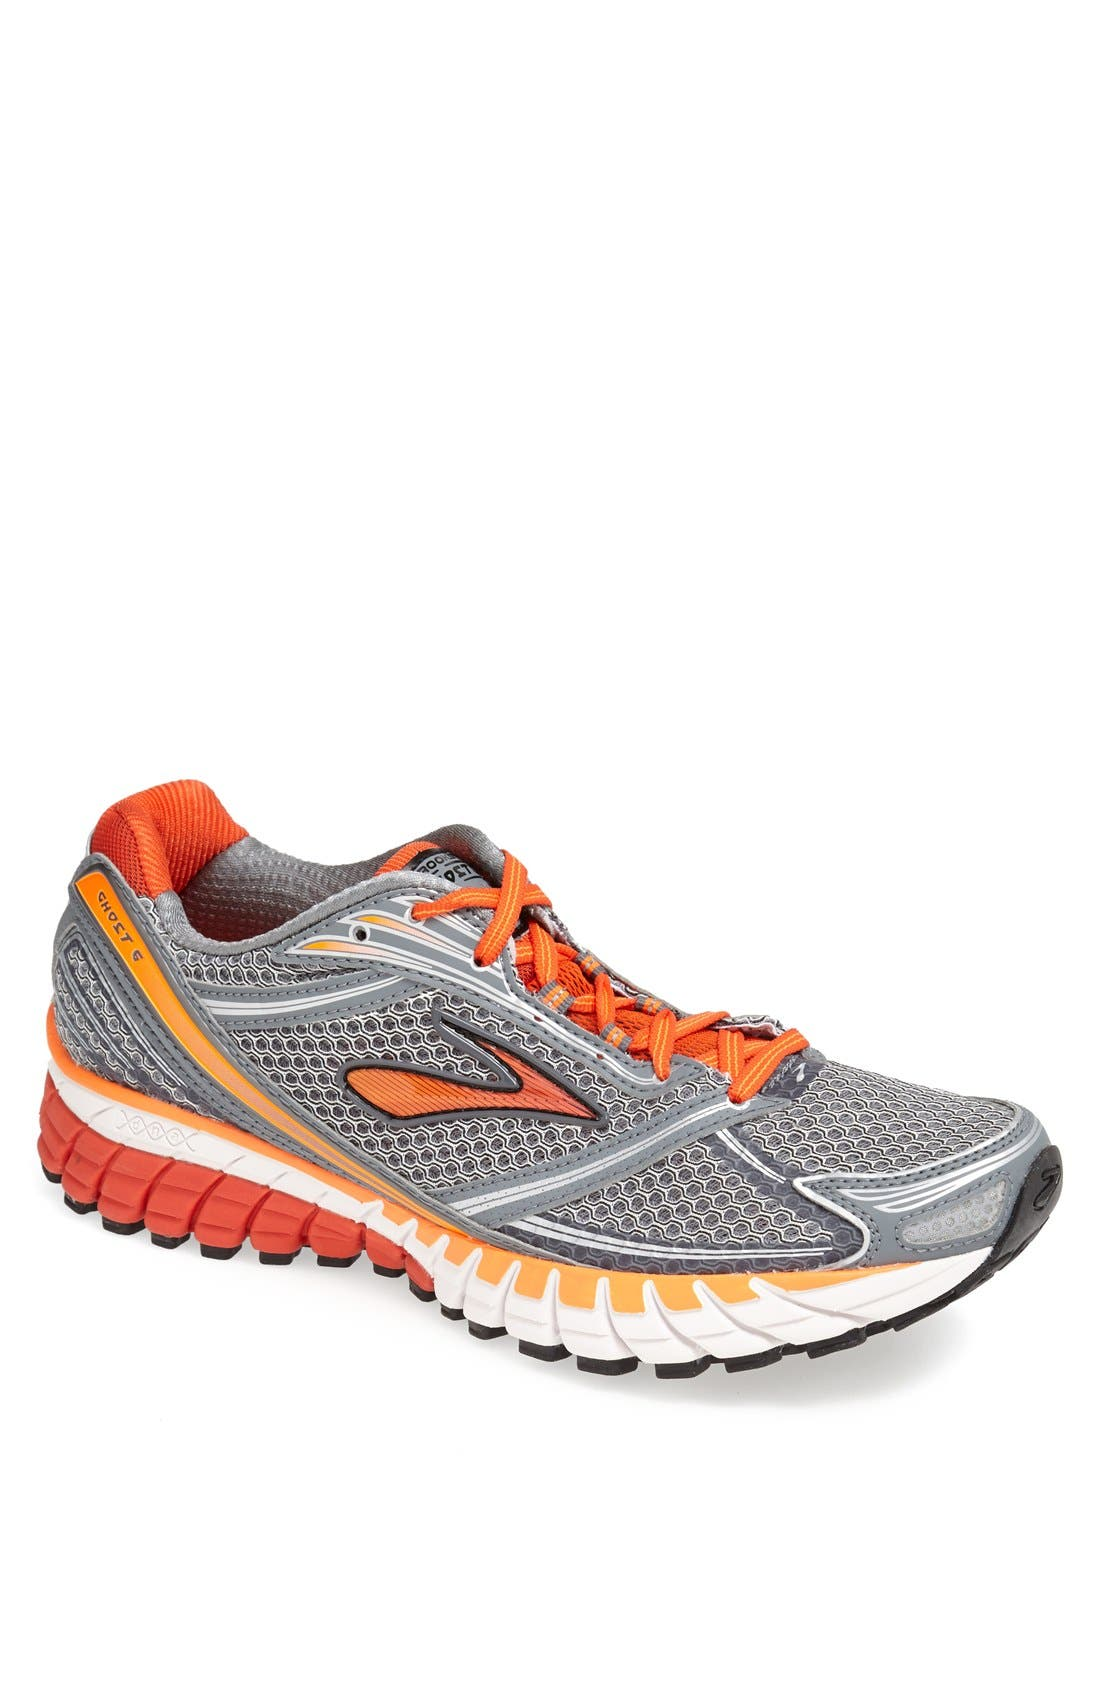 Main Image - Brooks 'Ghost 6' Running Shoe (Men) (Regular Retail Price: $109.95)